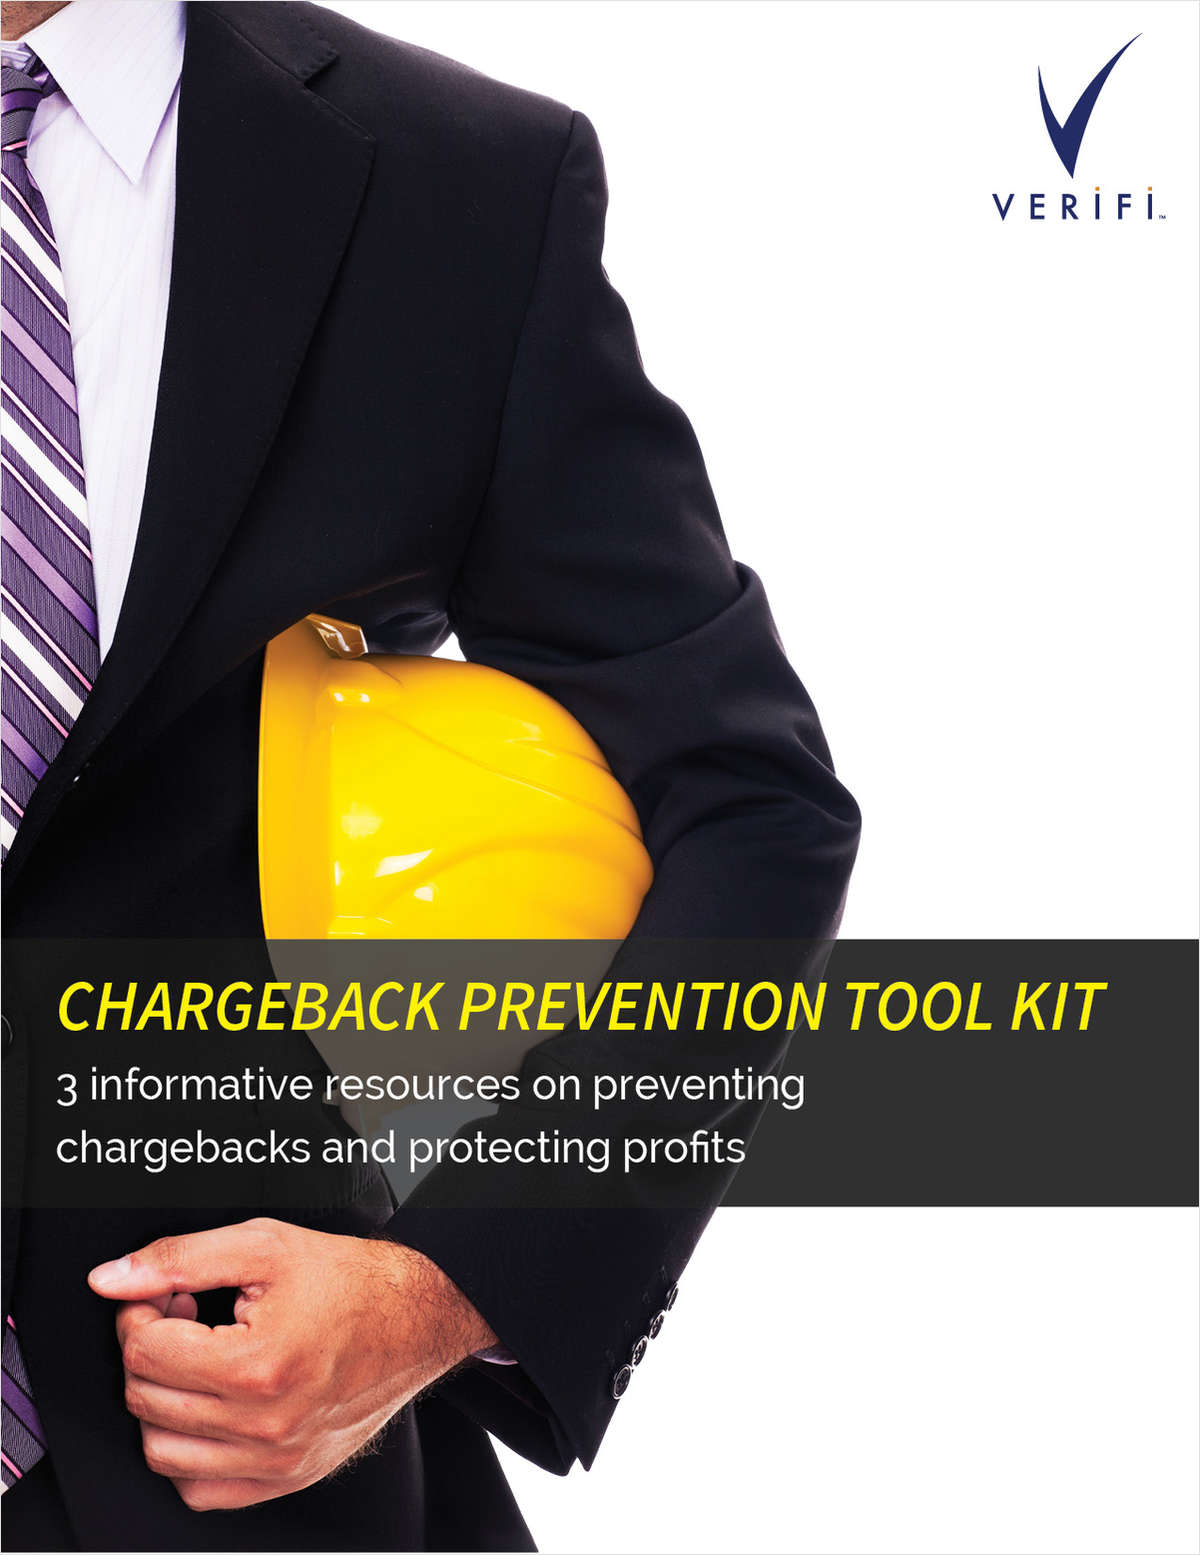 Free Chargeback Prevention Tool Kit to Help You  PREVENT CHARGEBACKS and RECOVER LOST PROFITS